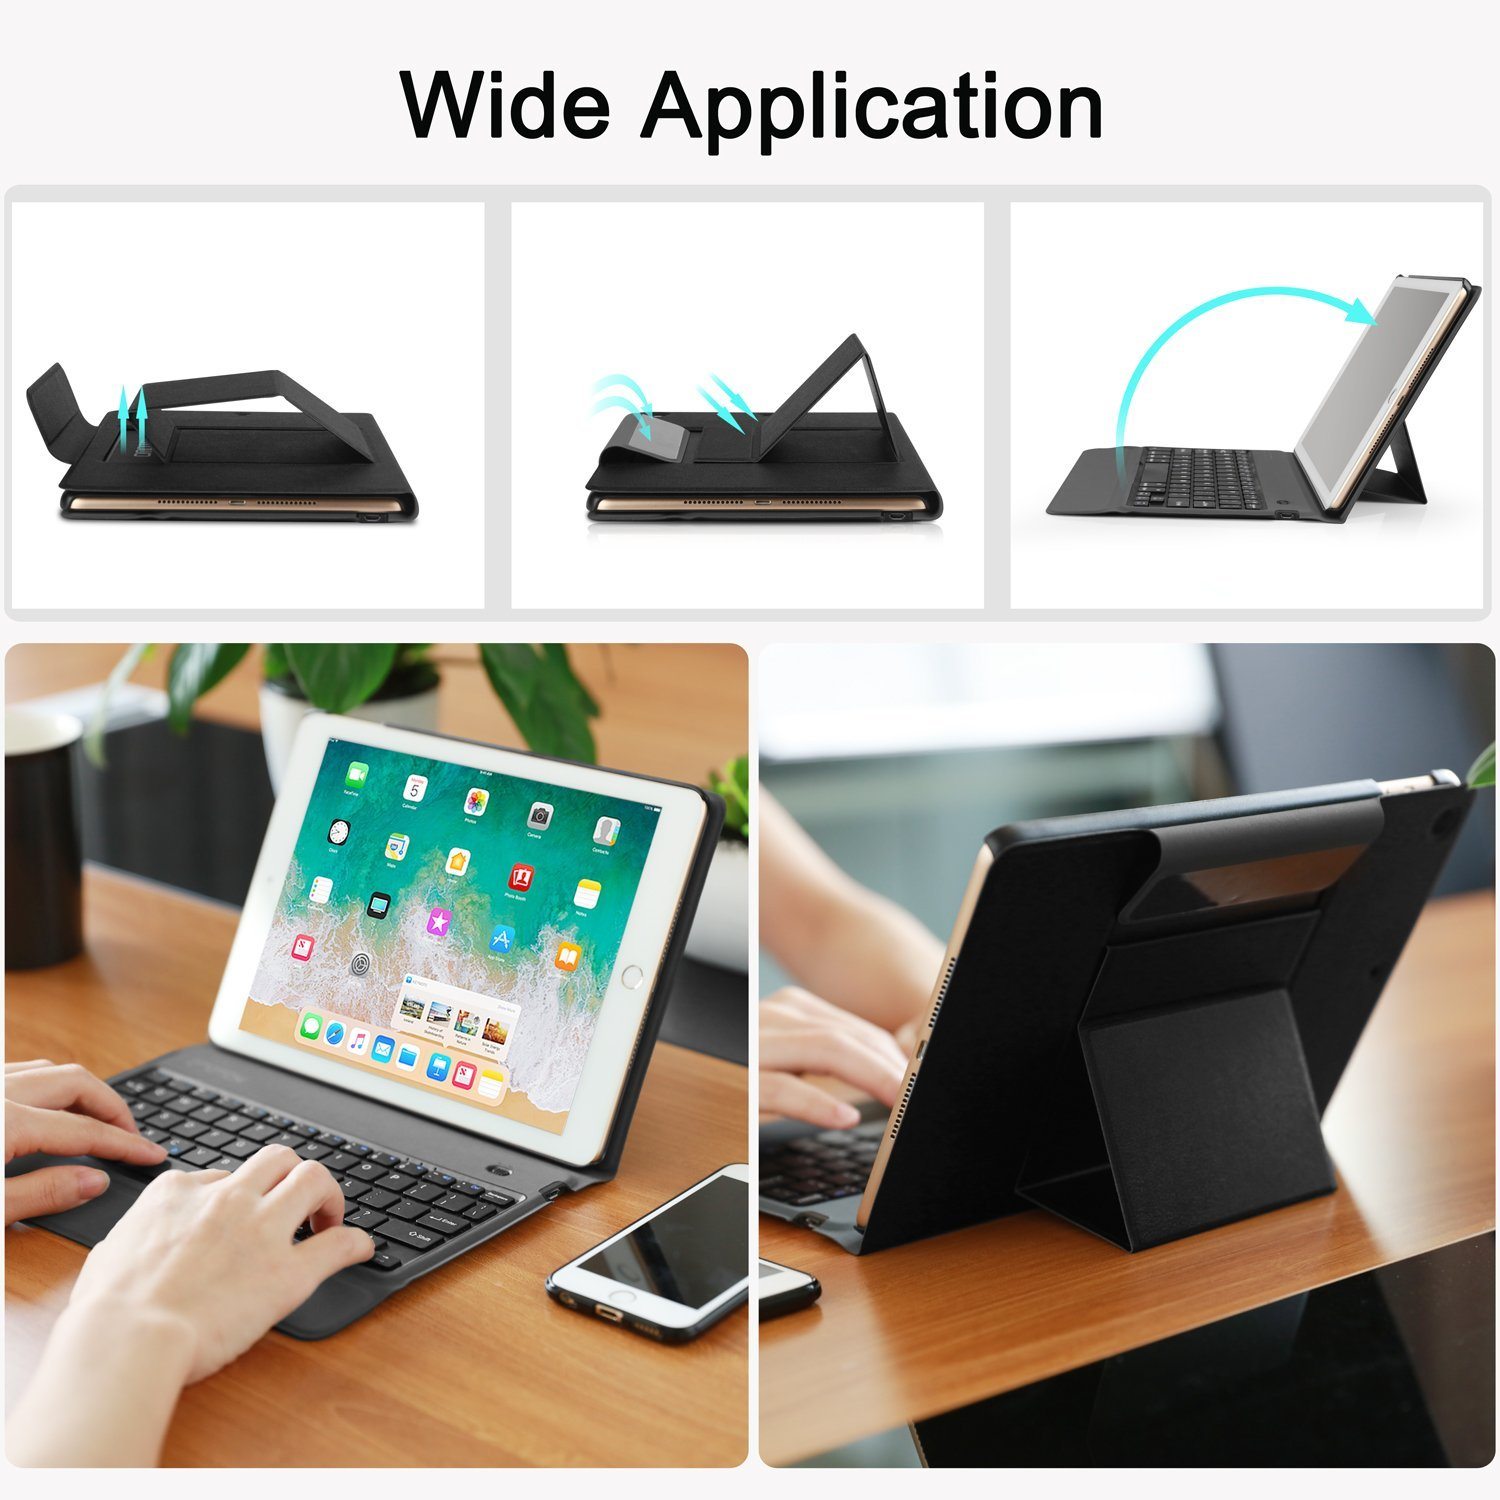 OMOTON New iPad 9.7 2018 & iPad 9.7 2017 Keyboard Case, [Upgraded Version] Ultra-Thin Bluetooth Keyboard Portfolio Case with Stand, PU Leather, and Auto Sleep/Wake for Apple iPad 9.7 2017 2018 Tablet by OMOTON (Image #7)